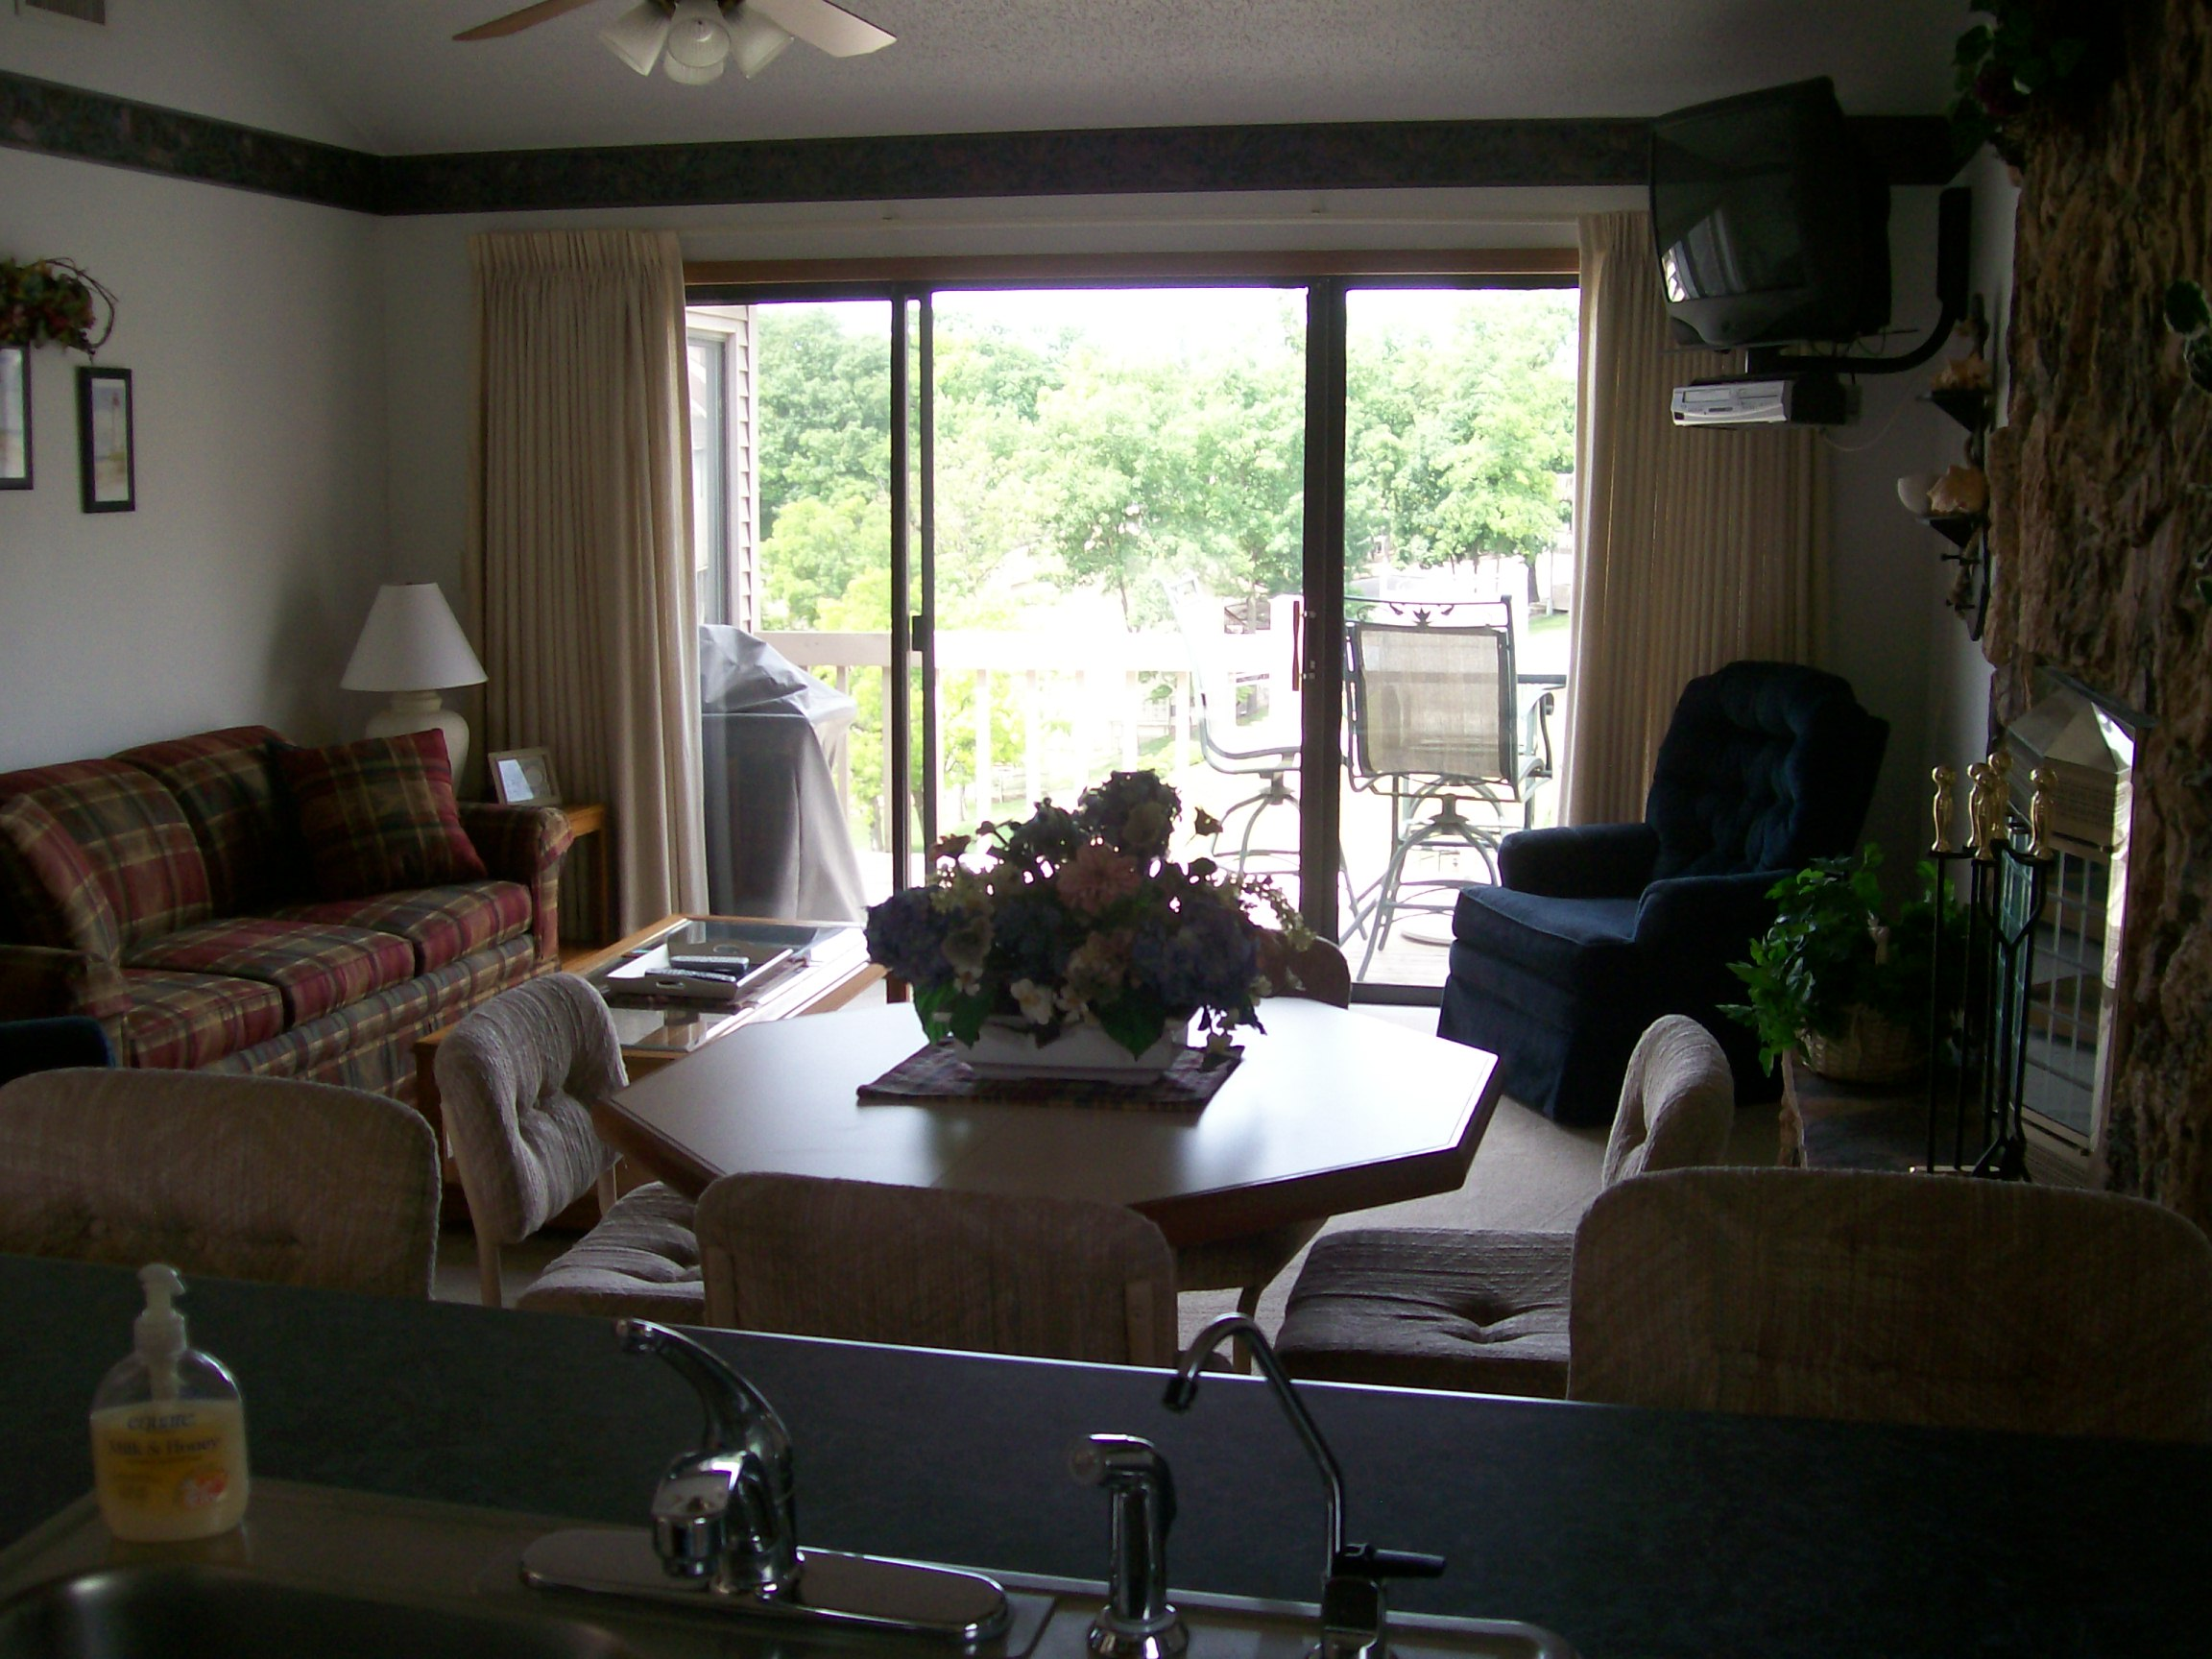 Two bedroom two bath condo at Robinwood